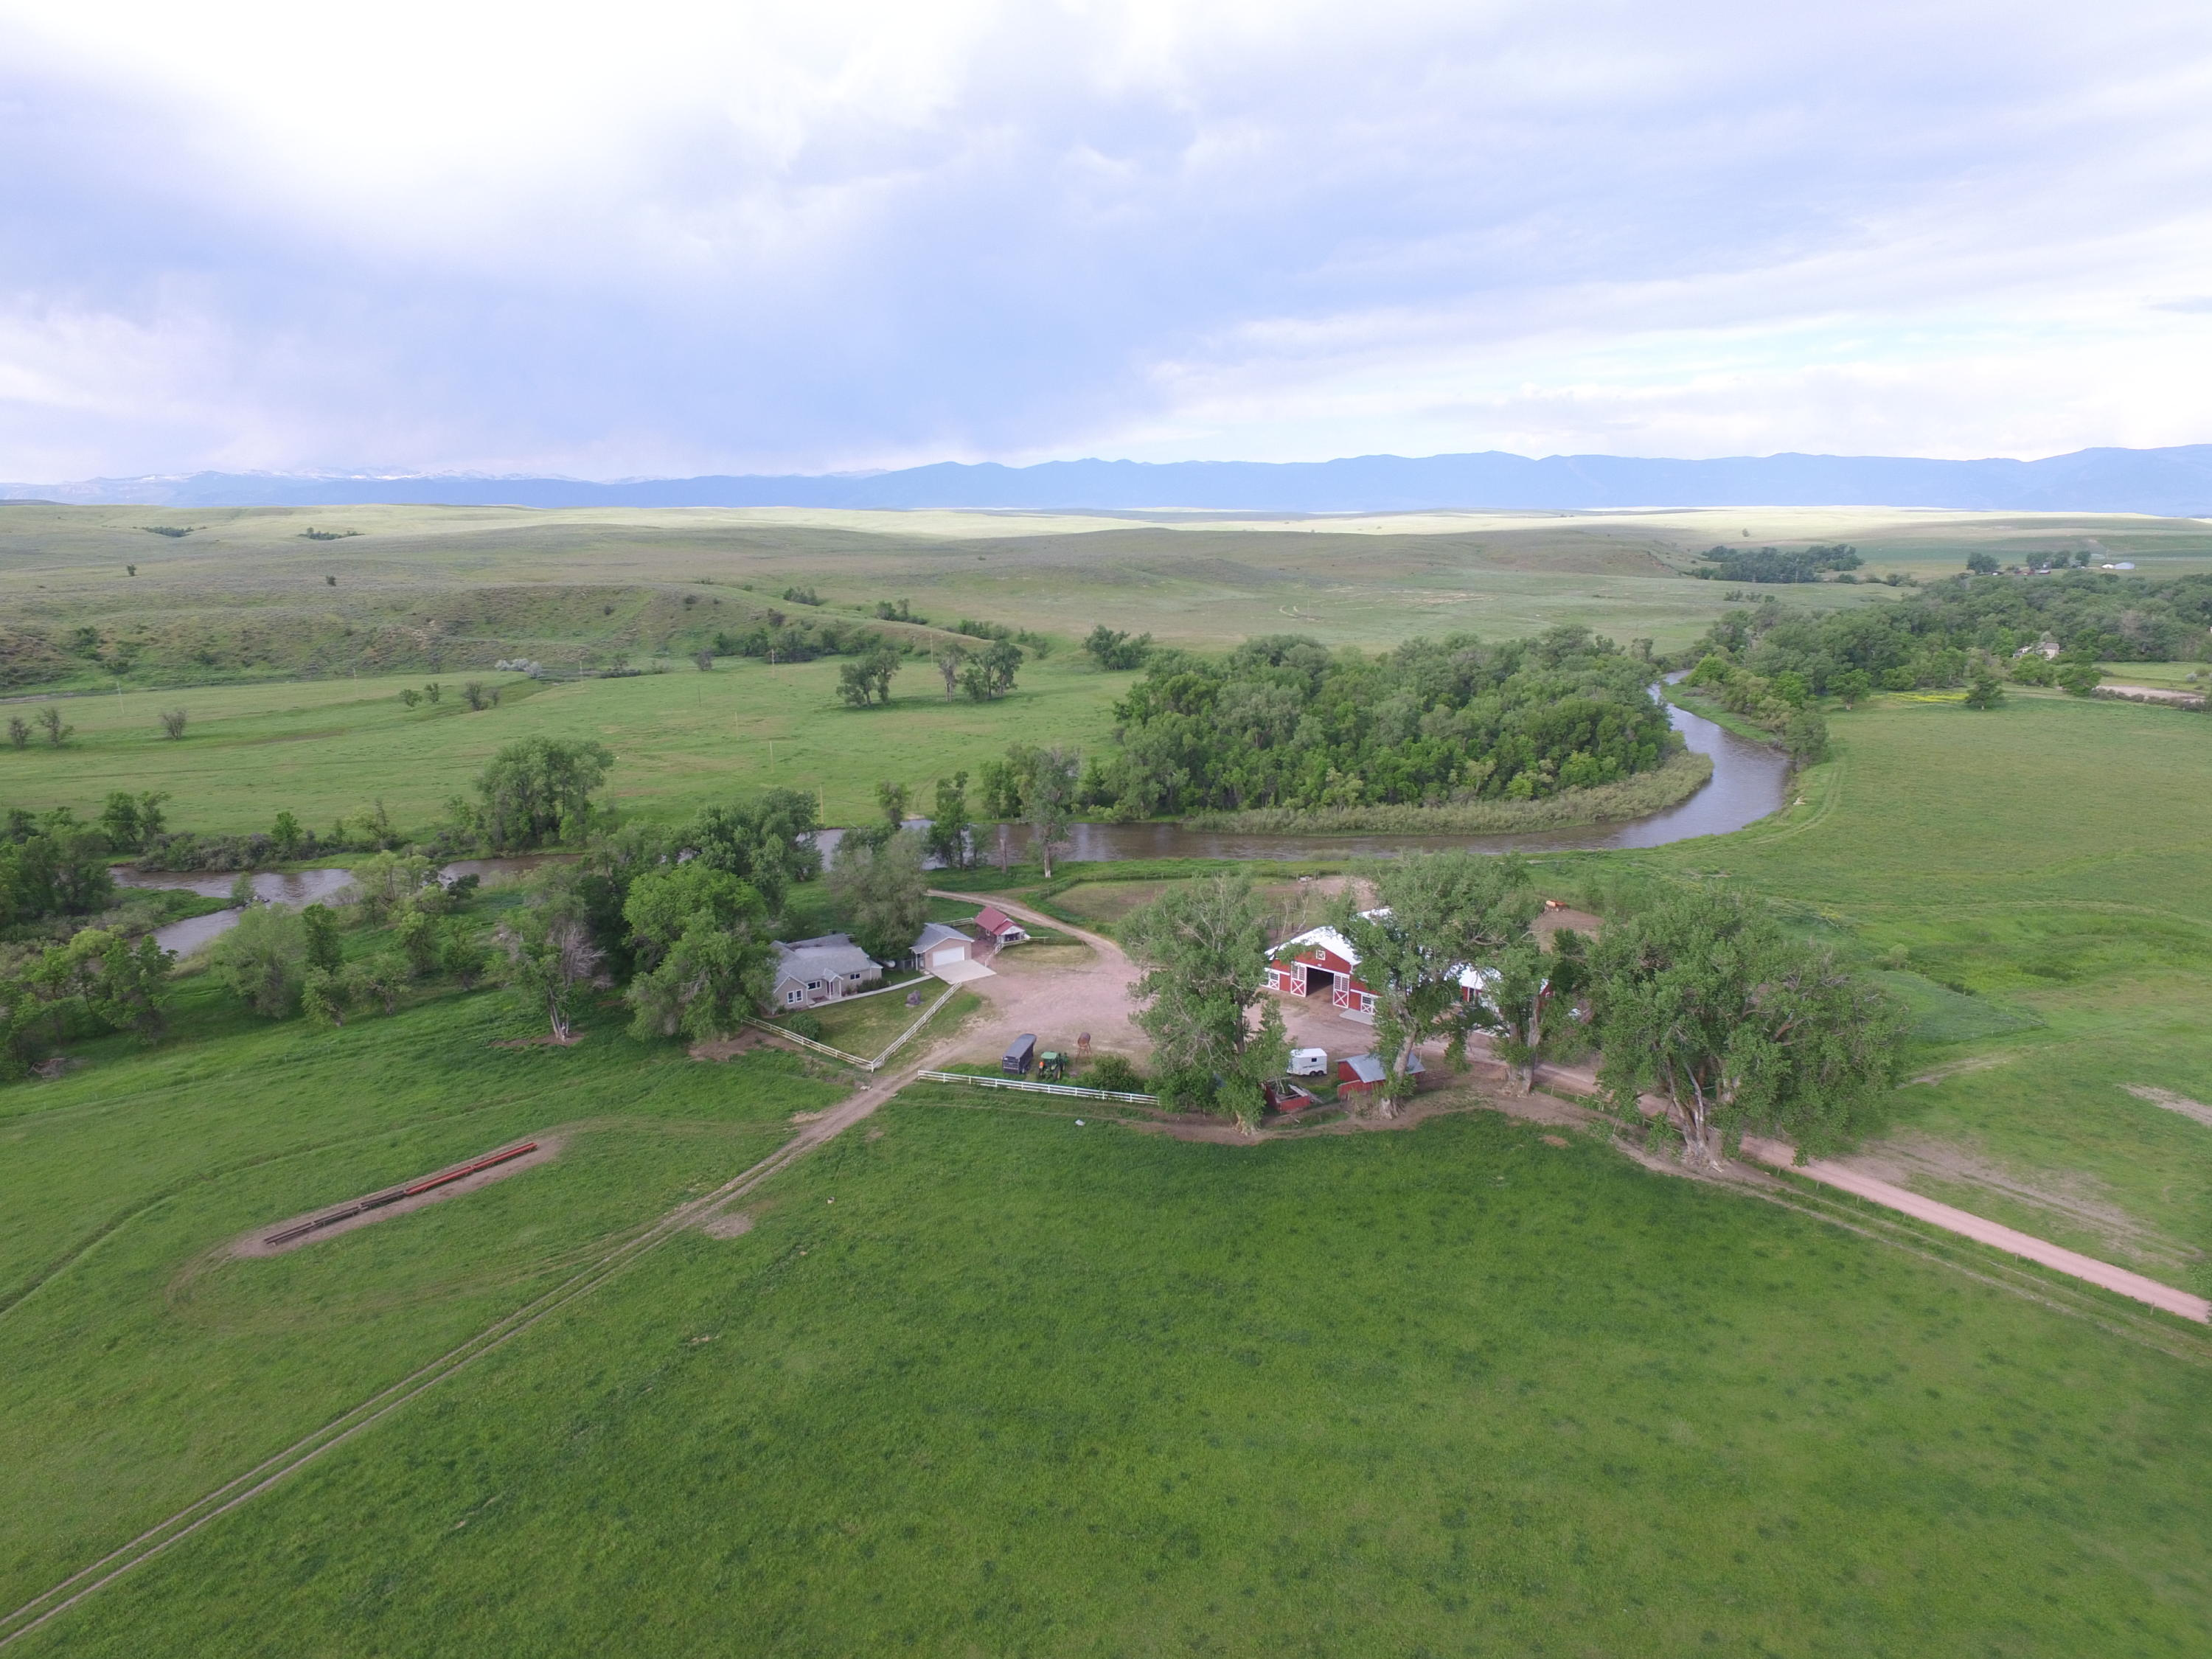 1718 St Hwy 345, Sheridan, Wyoming 82801, 3 Bedrooms Bedrooms, ,3 BathroomsBathrooms,Ranch,For Sale,St Hwy 345,19-155